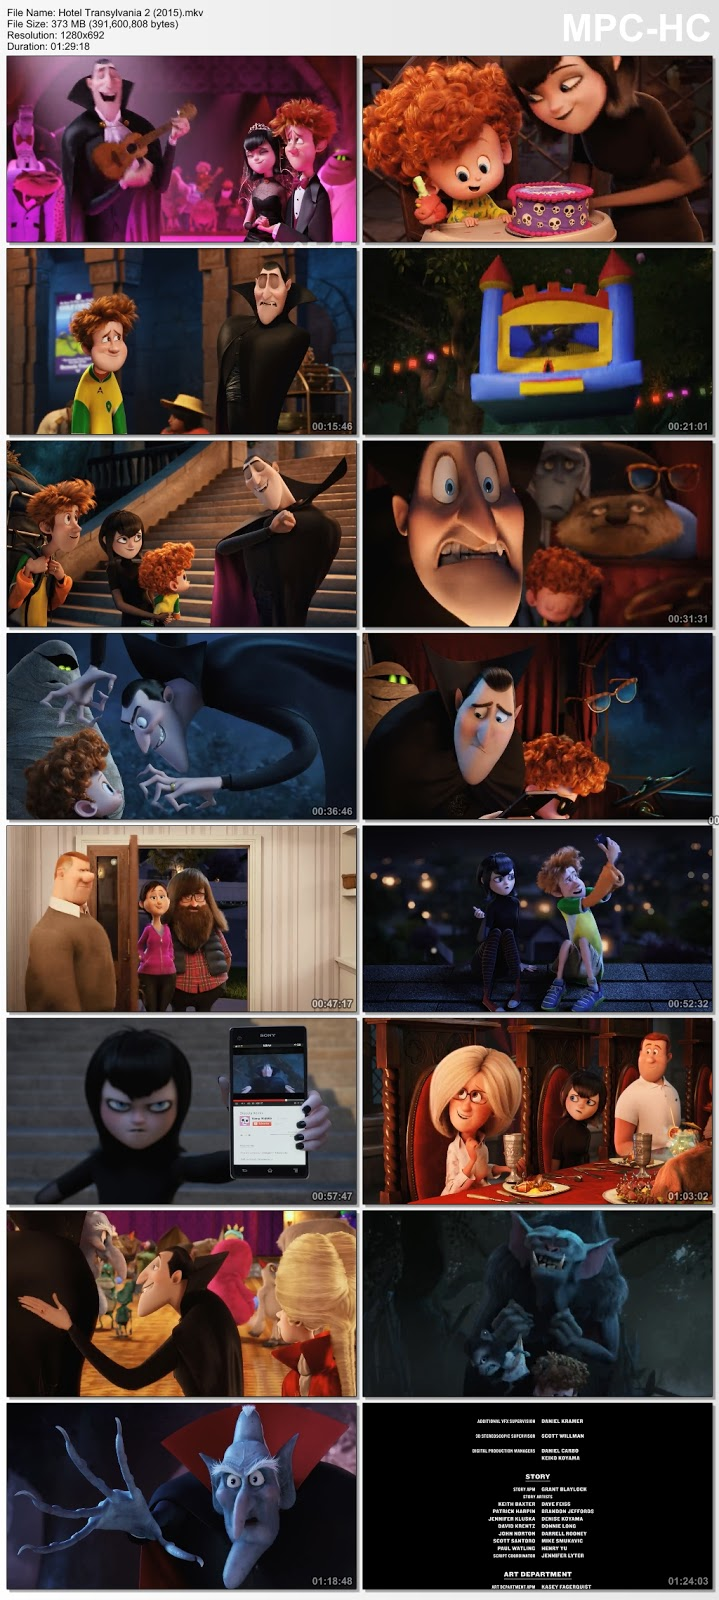 Hotel Transylvania 2 2015 Dual Audio Hindi 480p BluRay 300MB Desirehub